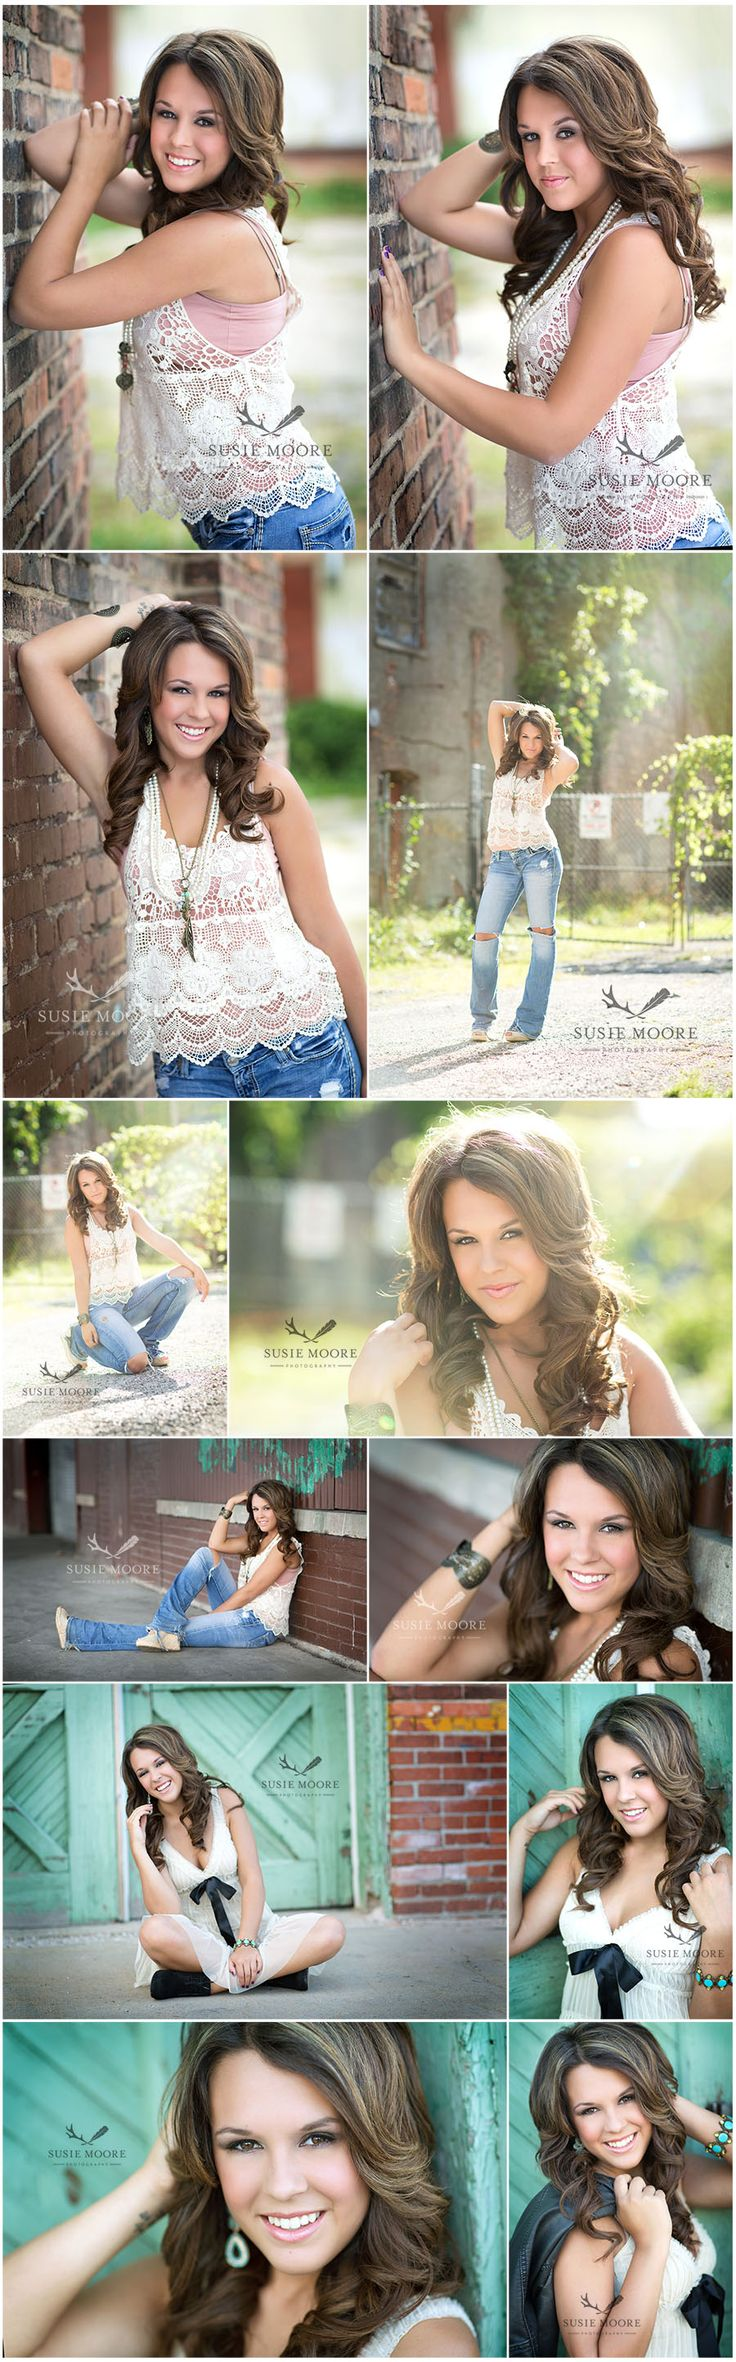 Sydney | Lincoln-Way East High School | Class of 2013 | Indianapolis Senior Photographer